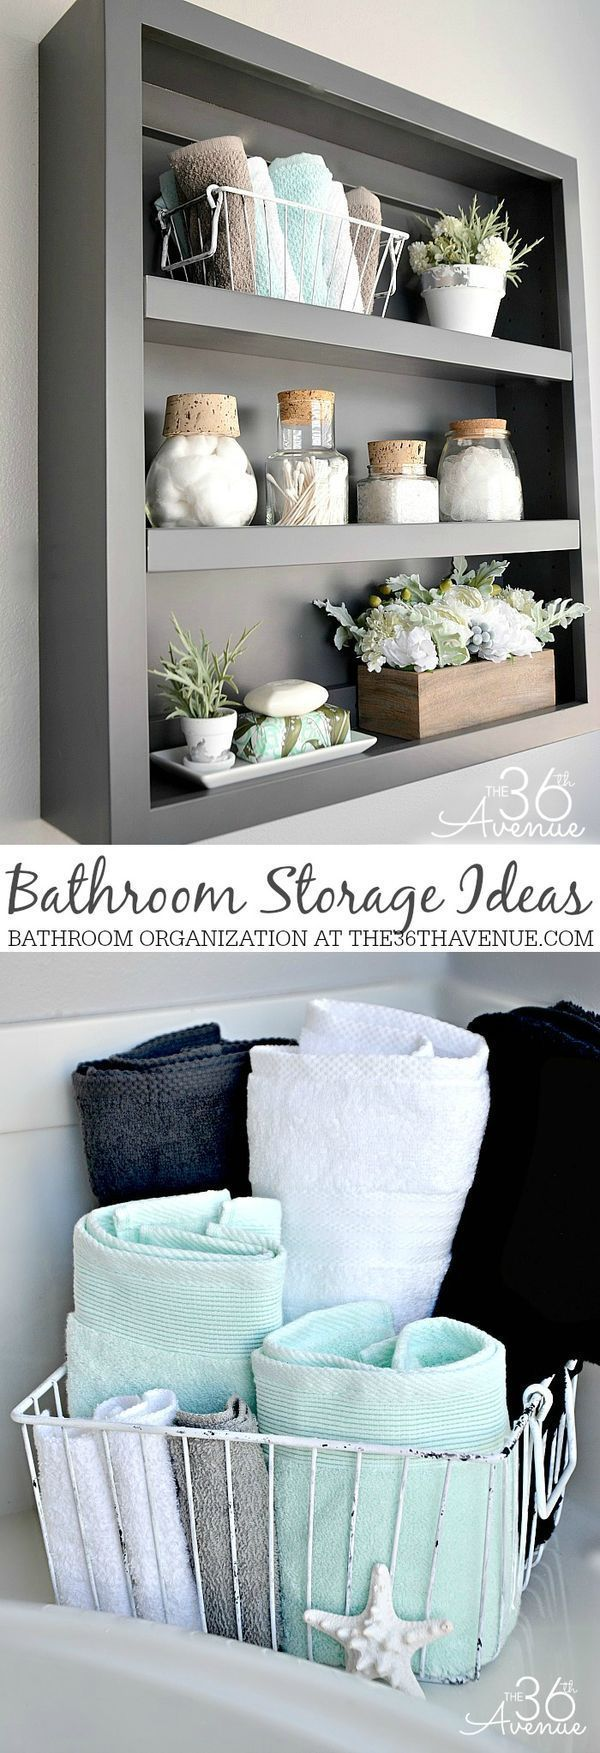 17 best images about organizing bathroom on pinterest - Anna s linens bathroom accessories ...